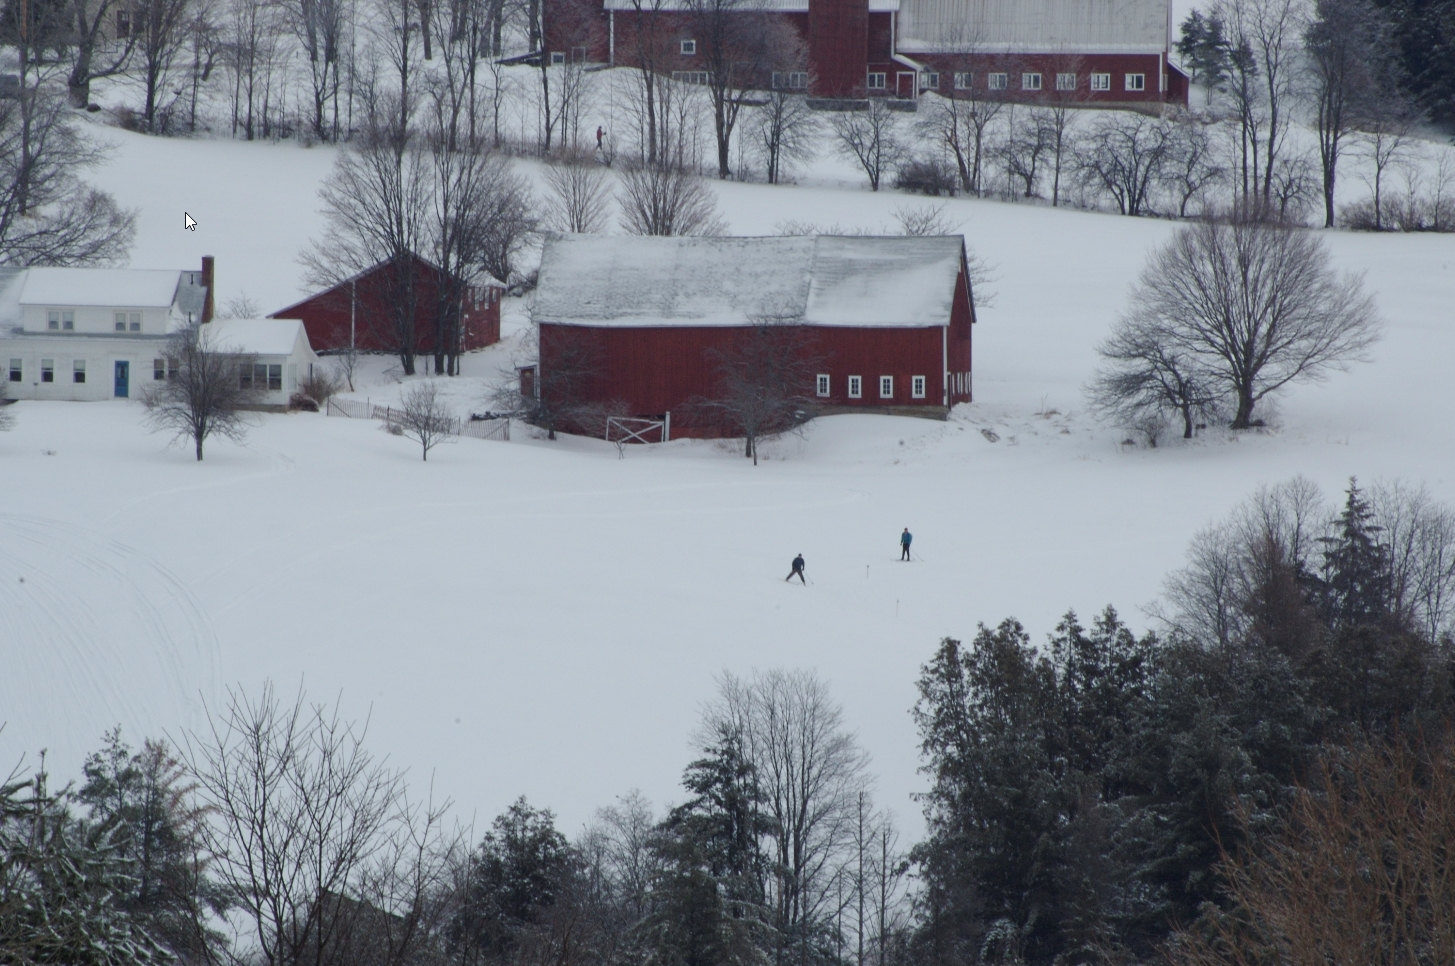 A Craftsbury Farm by Steve Wright